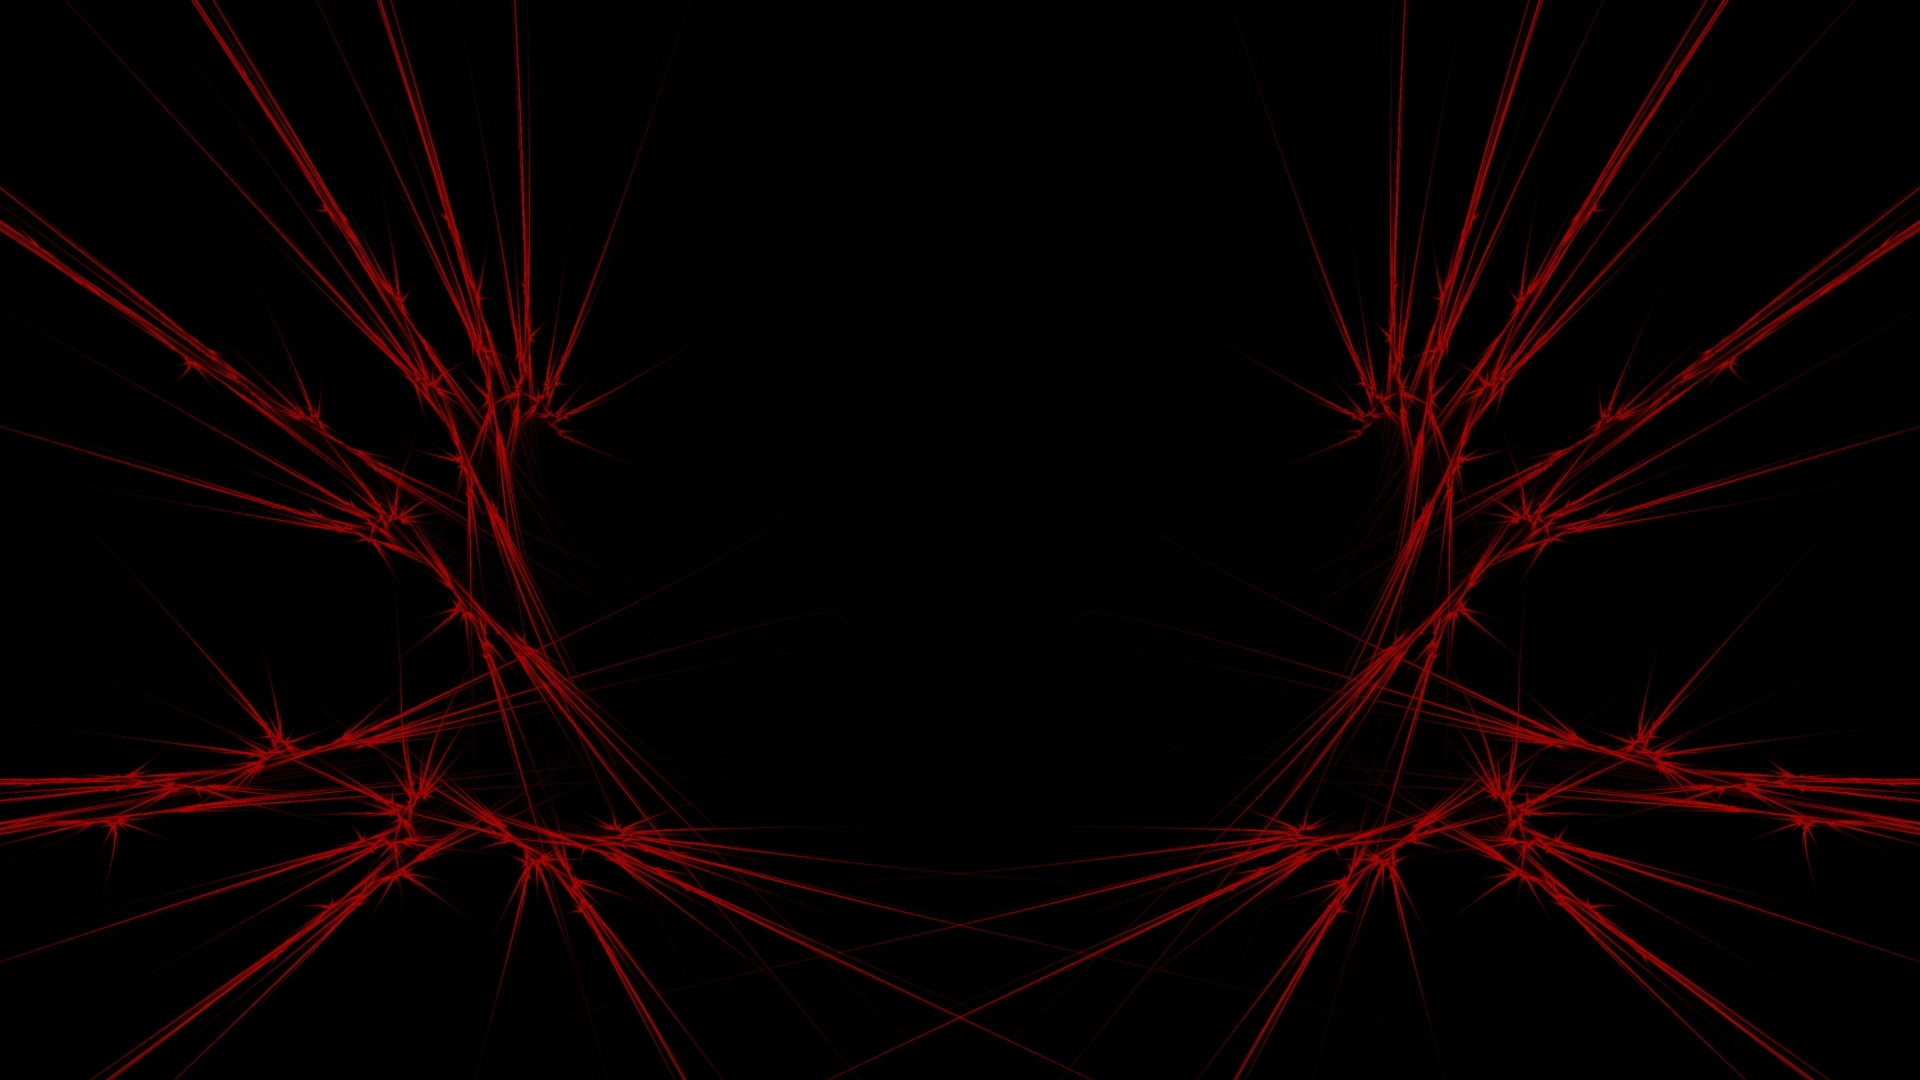 1920x1080  Black And Red HD Wallpapers.